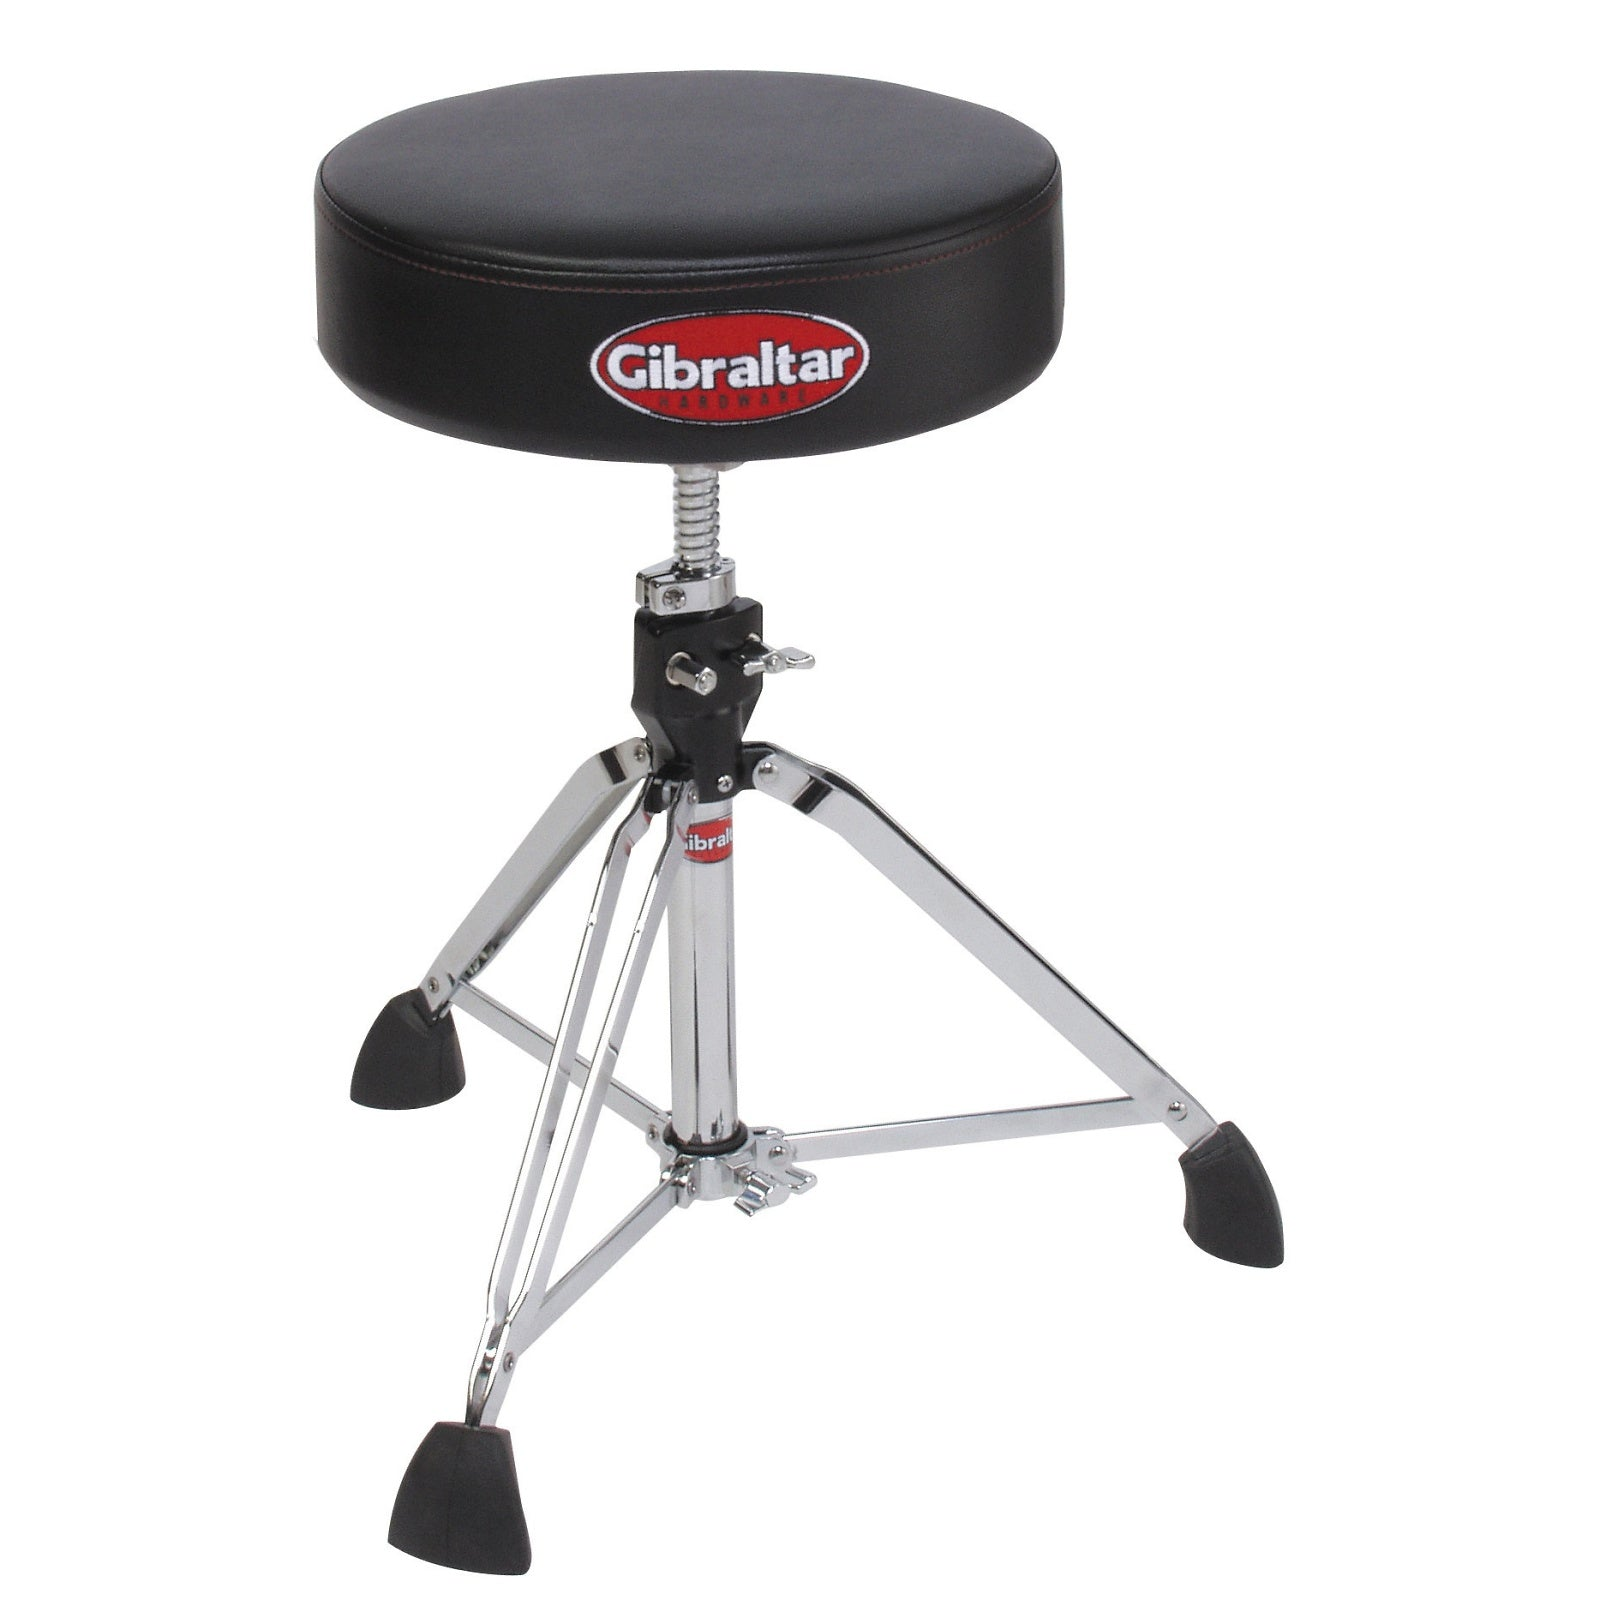 Gibraltar 9608 Round-Top Double-Braced Drum Throne